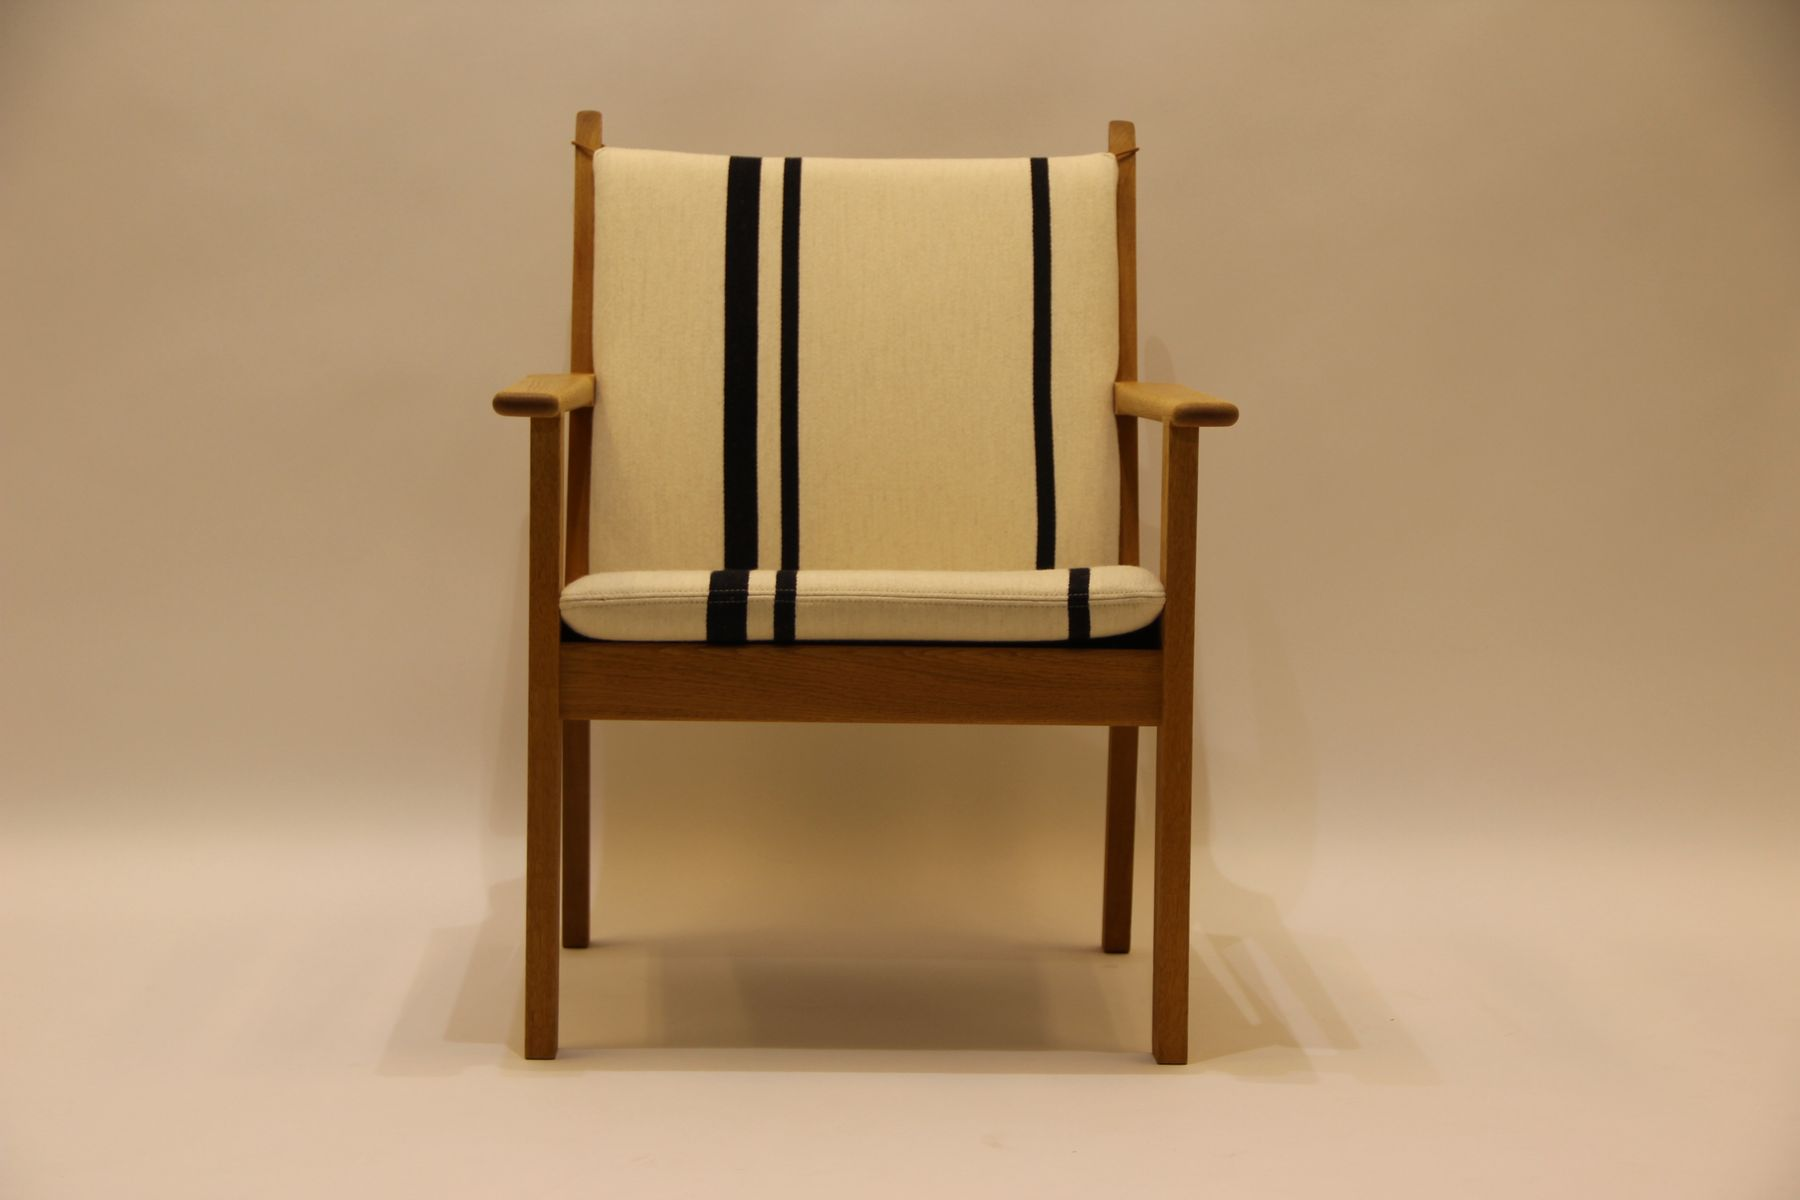 ge284 oak armchair by hans j wegner for getama for sale at pamono. Black Bedroom Furniture Sets. Home Design Ideas